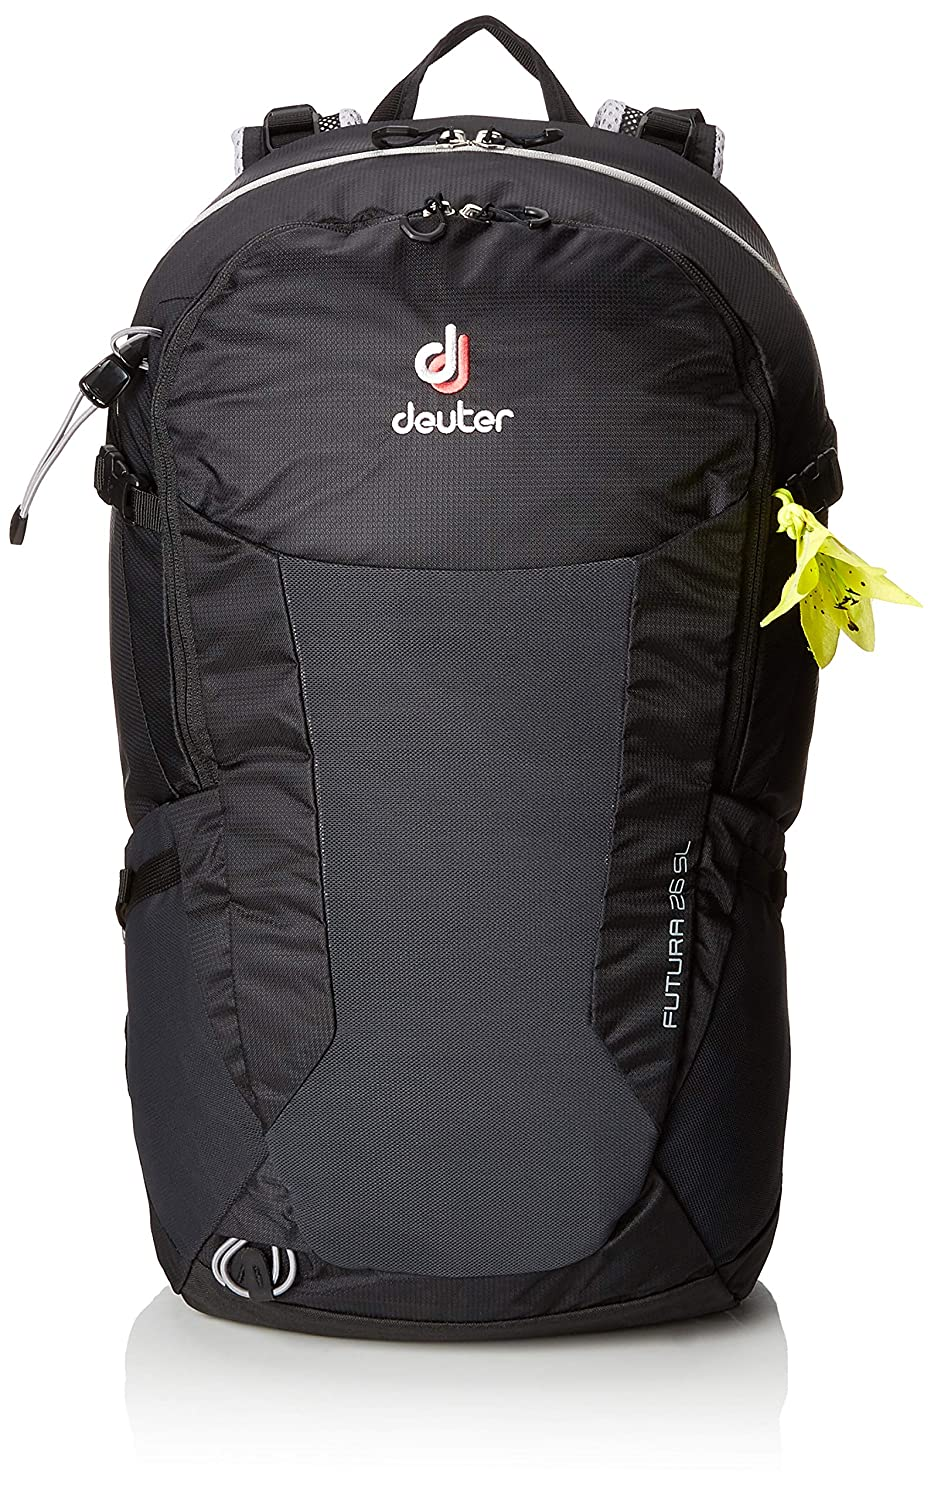 1ced1d4900c Amazon.com : Deuter Futura 26 SL Hiking Backpack with Detachable Rain  Cover, Black : Sports & Outdoors